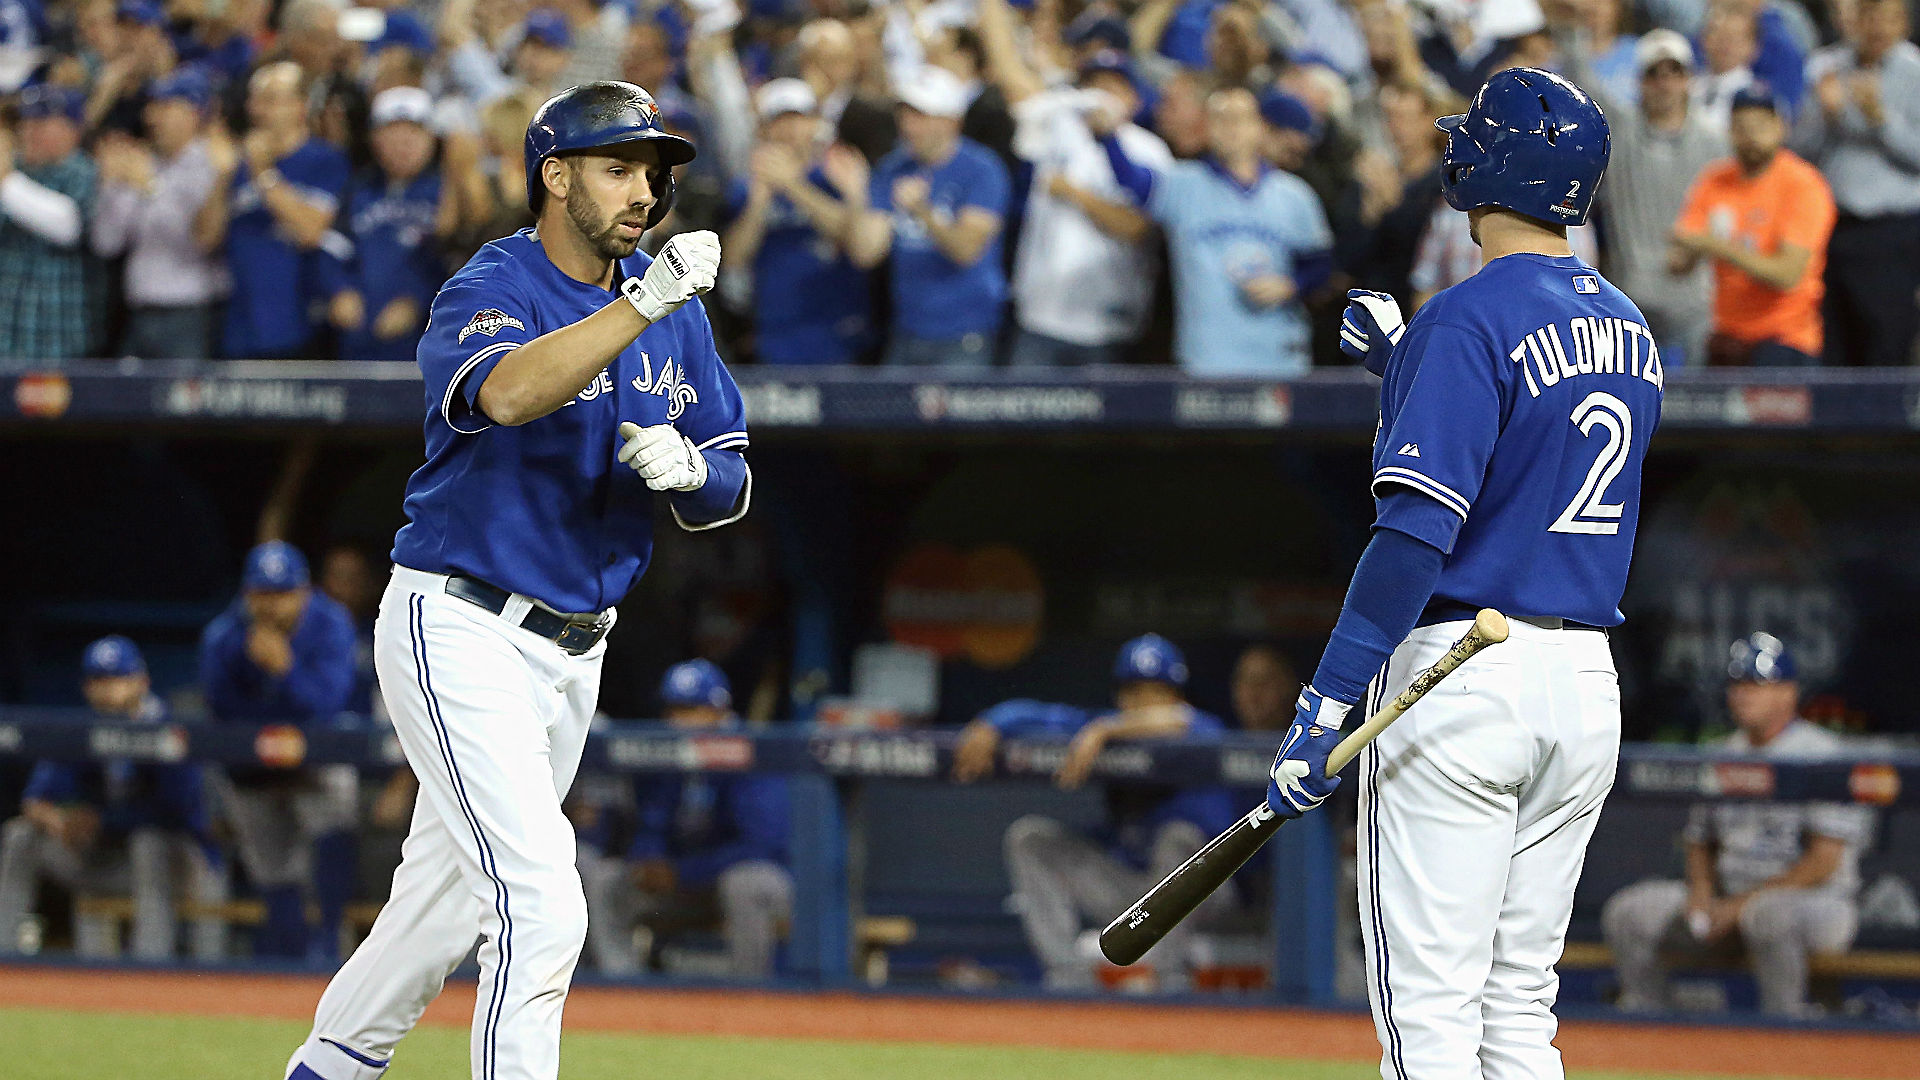 ​ALCS Game 6 odds, props, and pick – Toronto favored over K.C. for sixth straight time